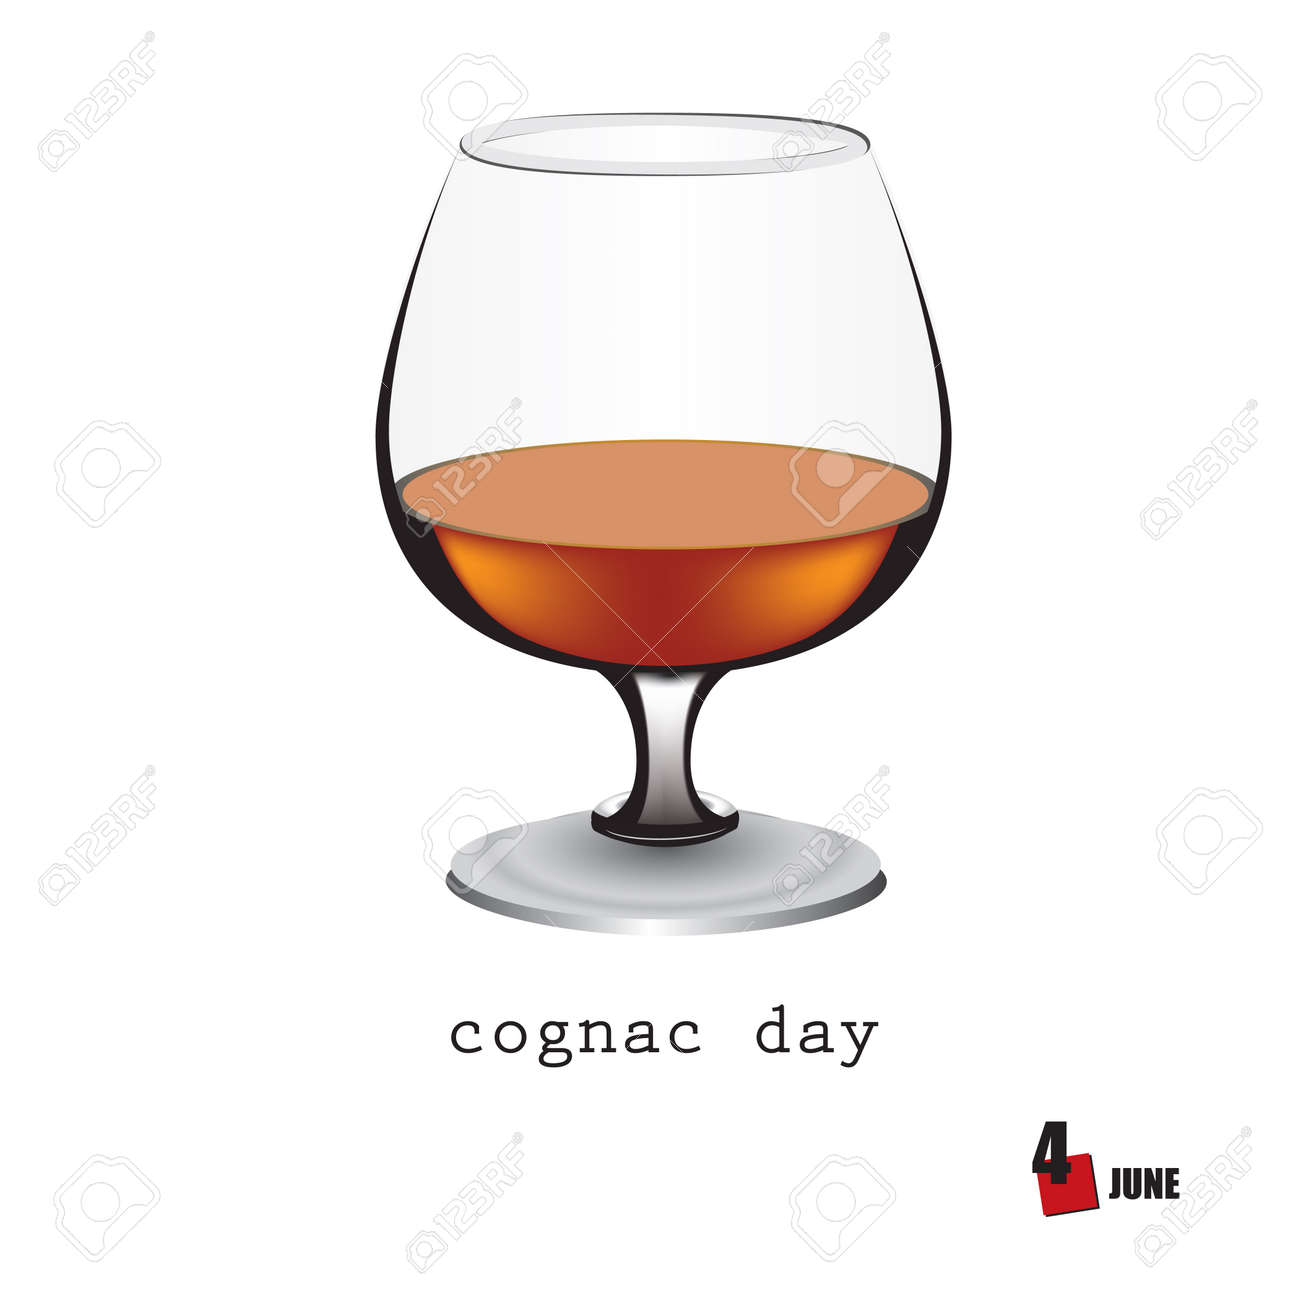 The calendar event is celebrated in june - Cognac Day - 169676022